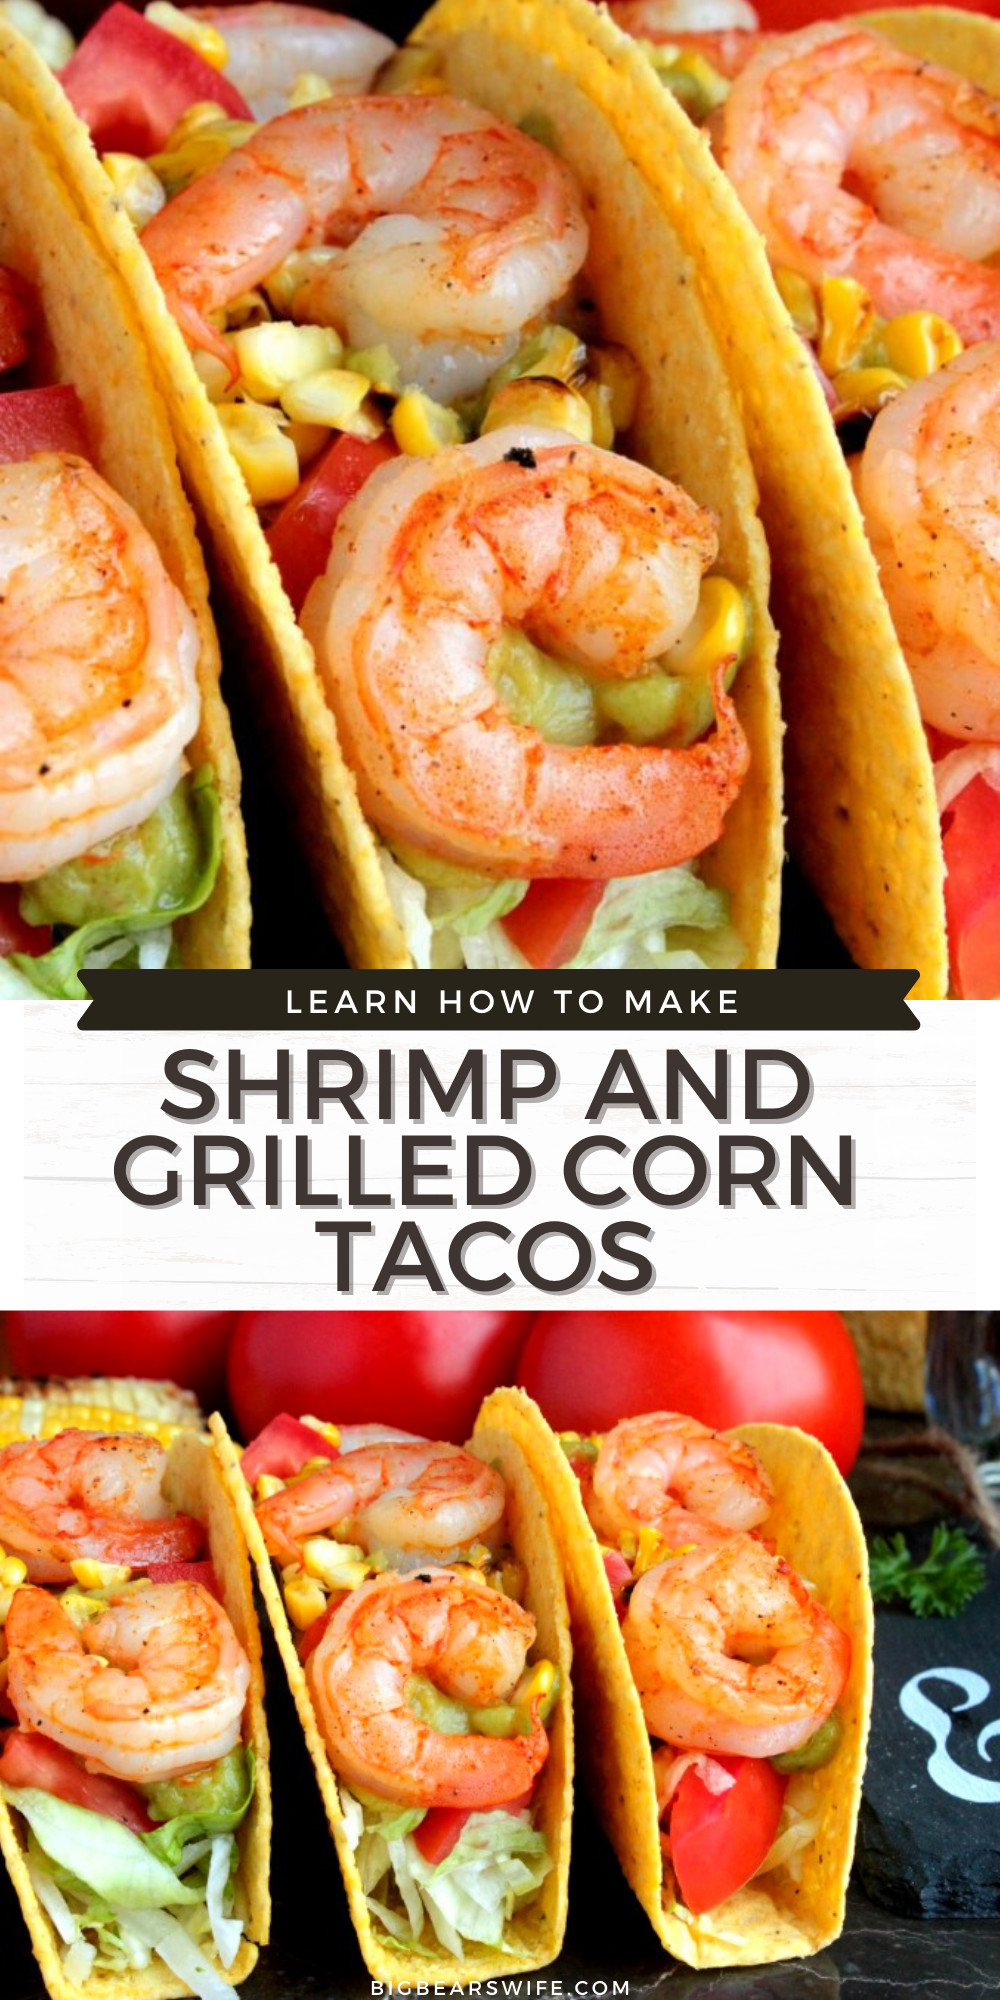 Easy Shrimp and Grilled Corn Tacos that pretty much scream summer! Grilled corn, seasoned shrimp and your favorite fillings make for one perfect taco meal!